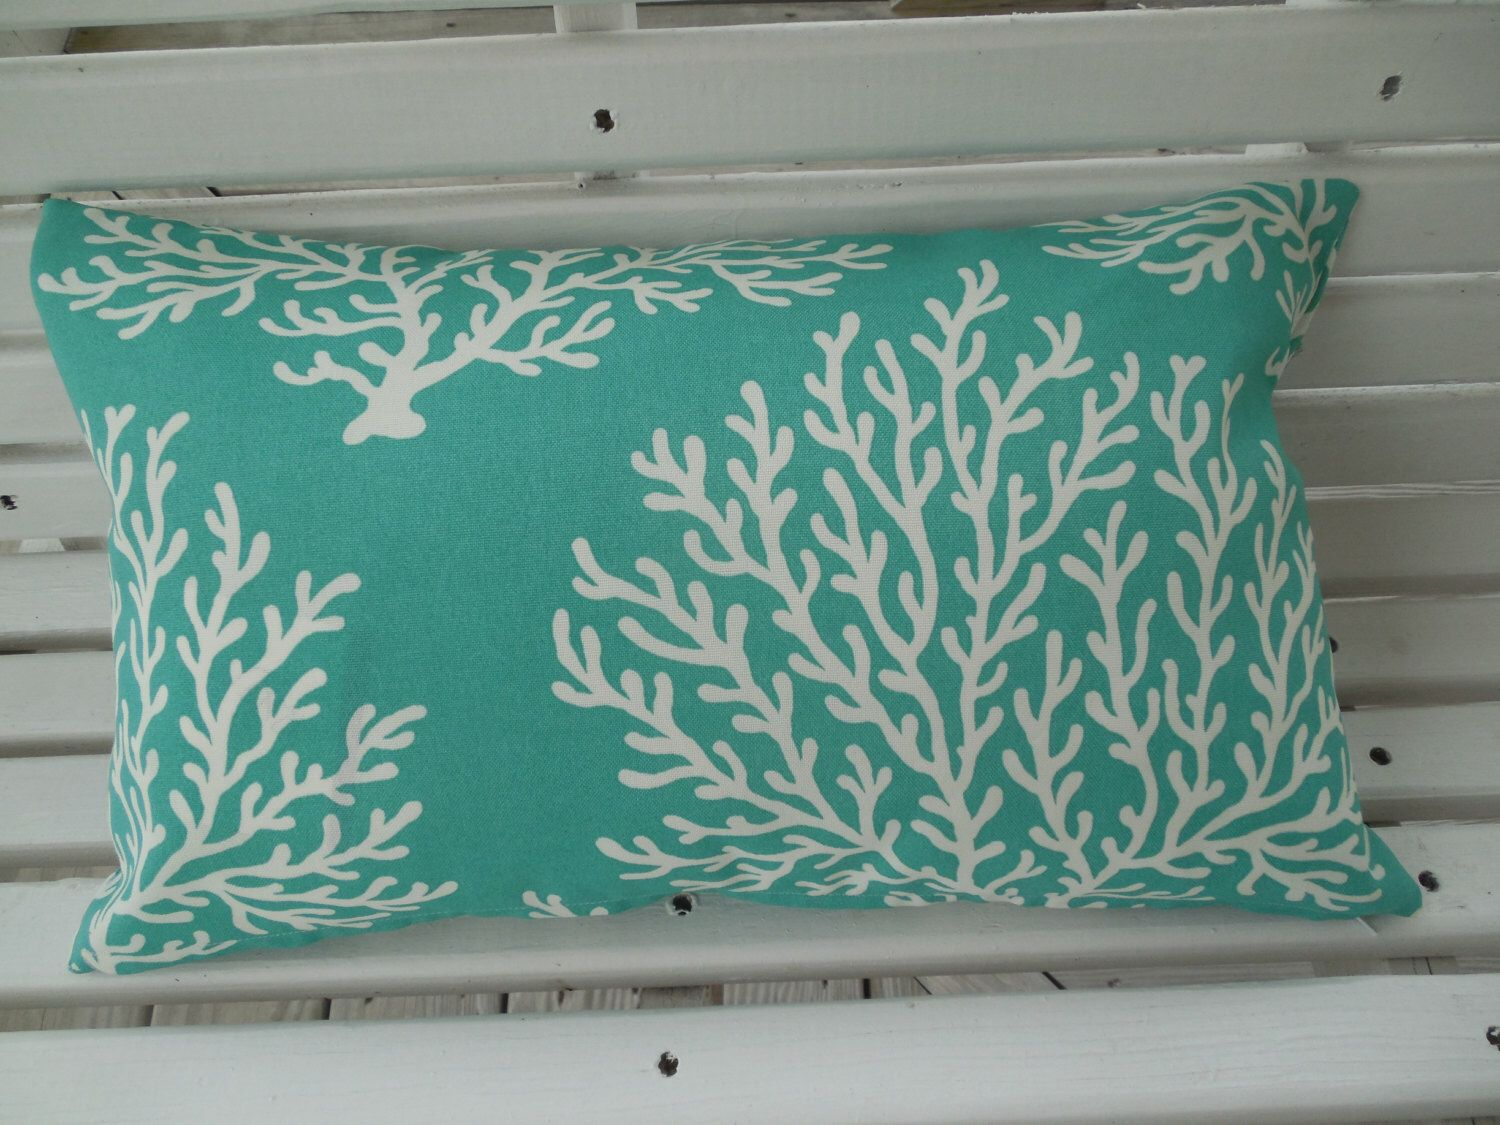 Beach Coral Outdoor Pillow Cover Teal Aqua Navy Coastal Patio Porch  Decorative Cushion Nautical Deck Decor